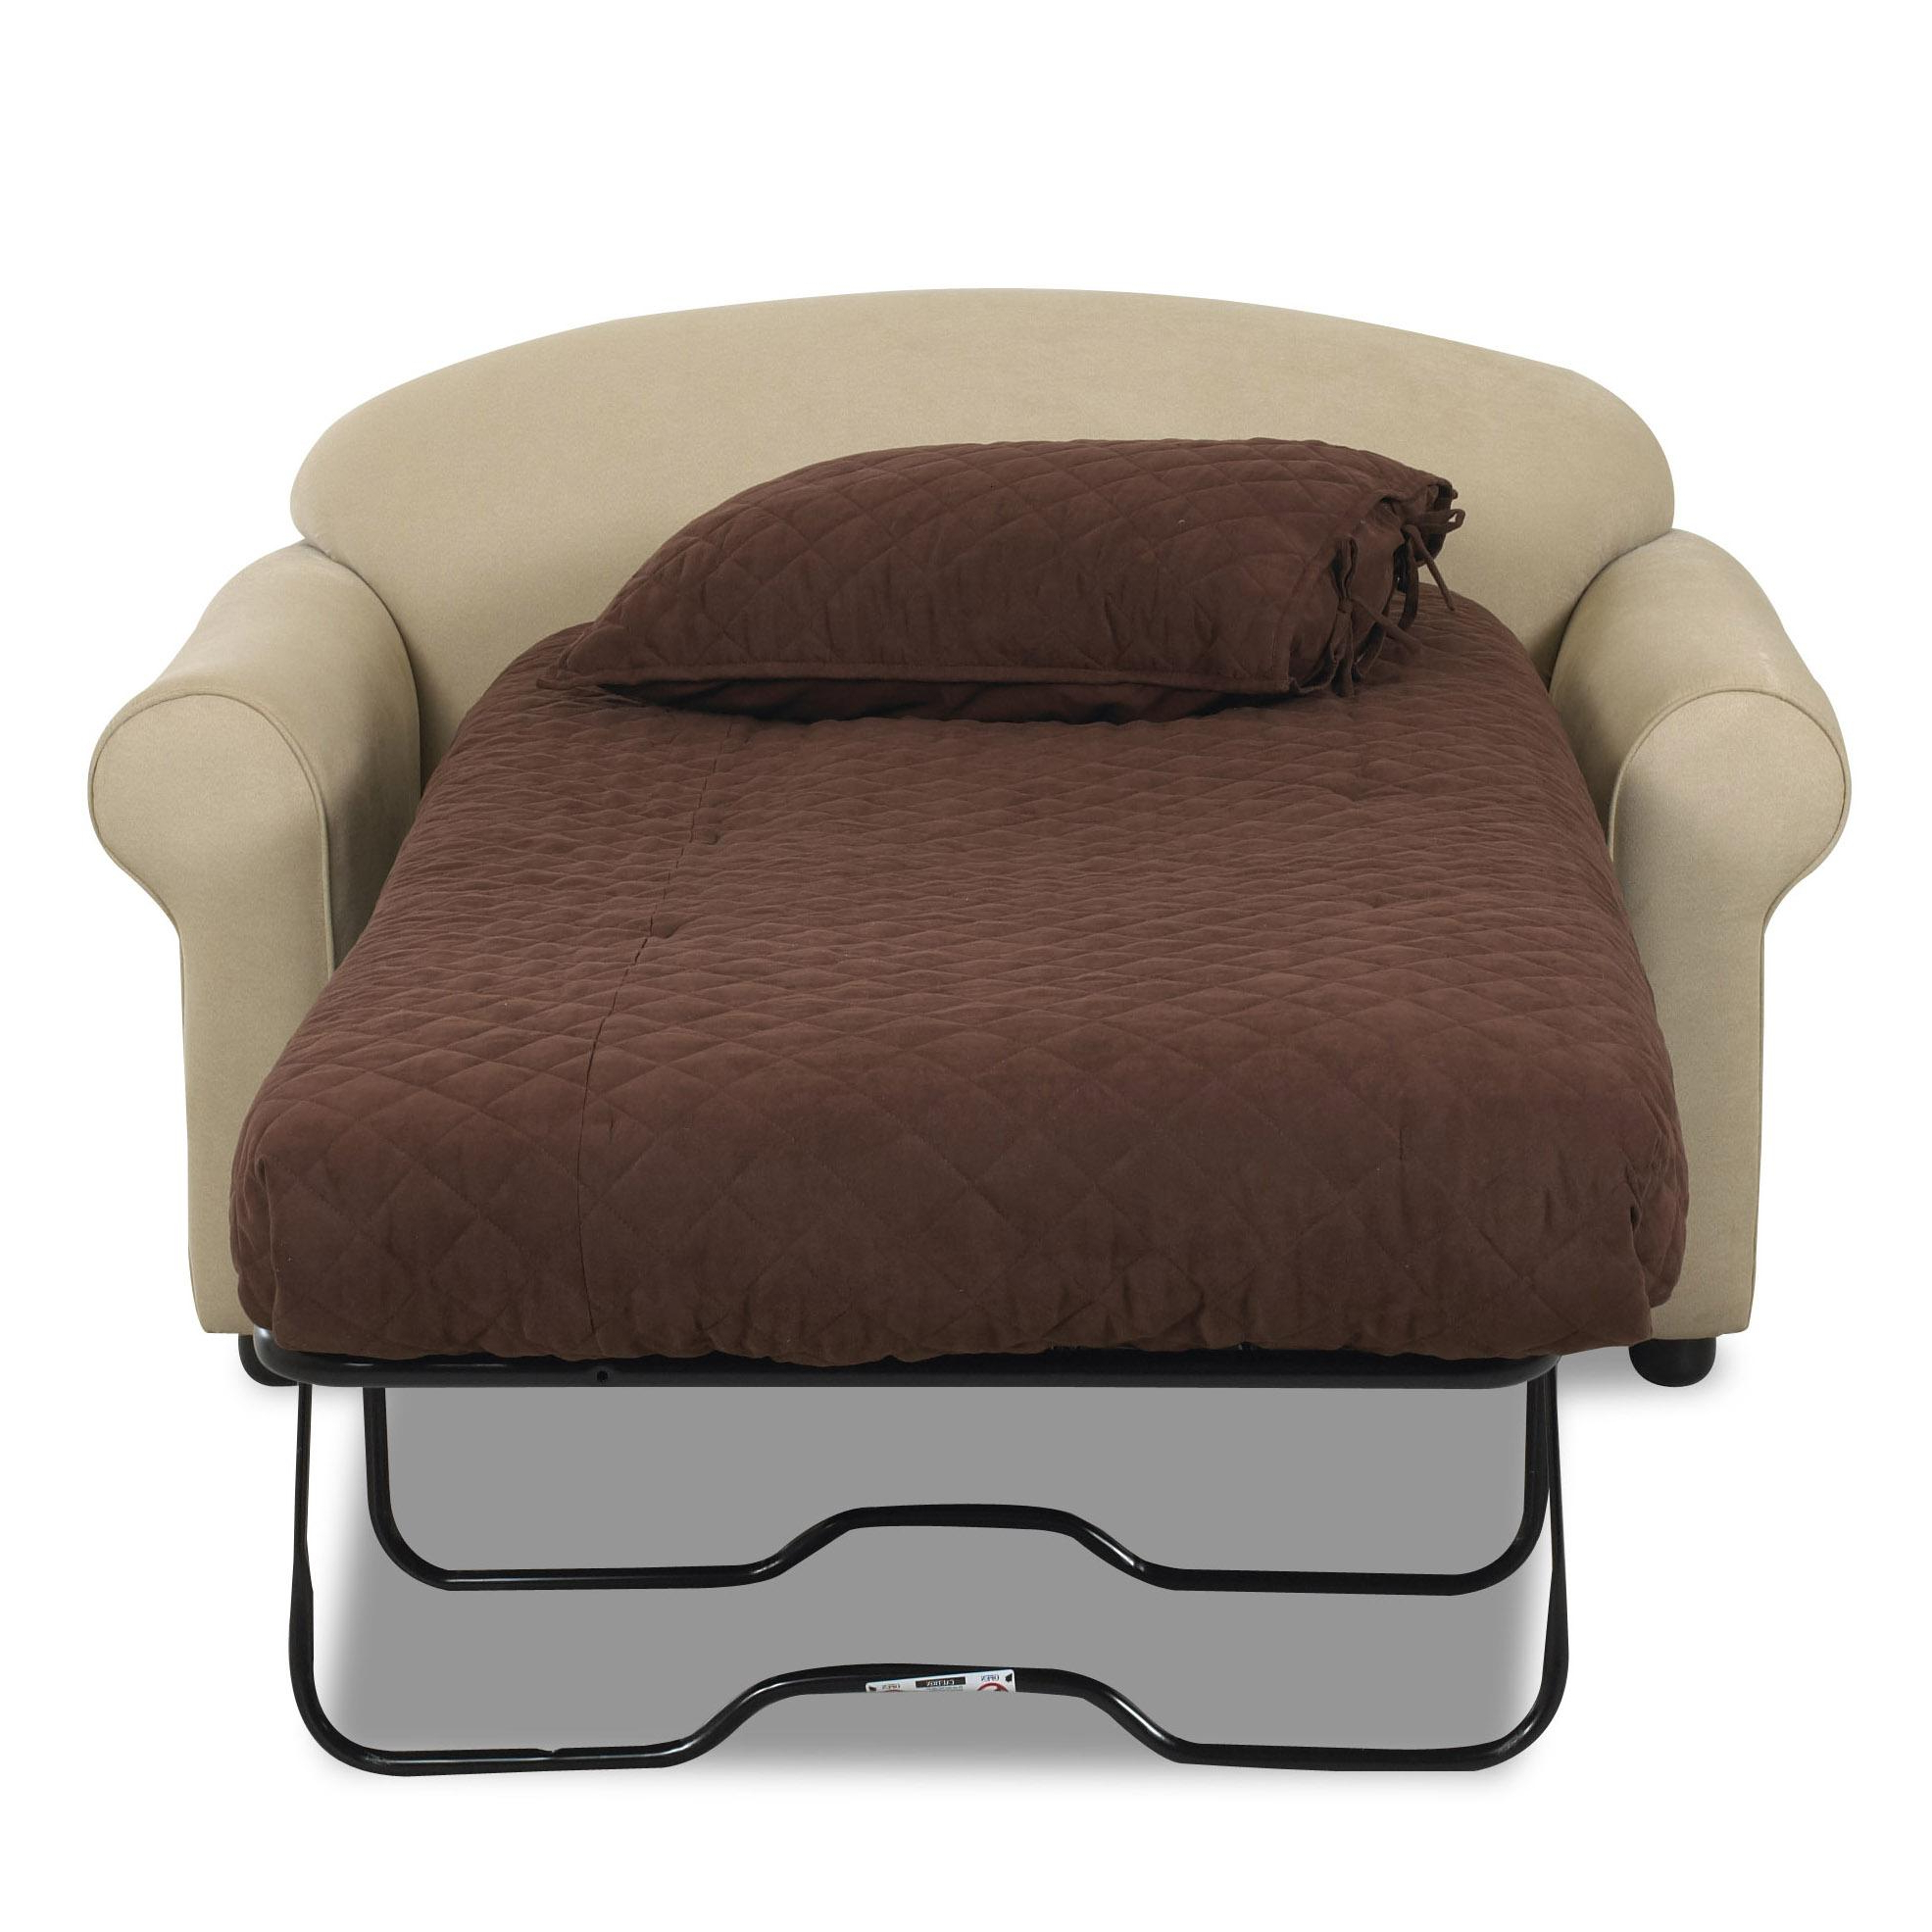 Popular Sofa Beds Chairs Intended For Klaussner Possibilities Innerspring Chair Sleeper (View 7 of 20)